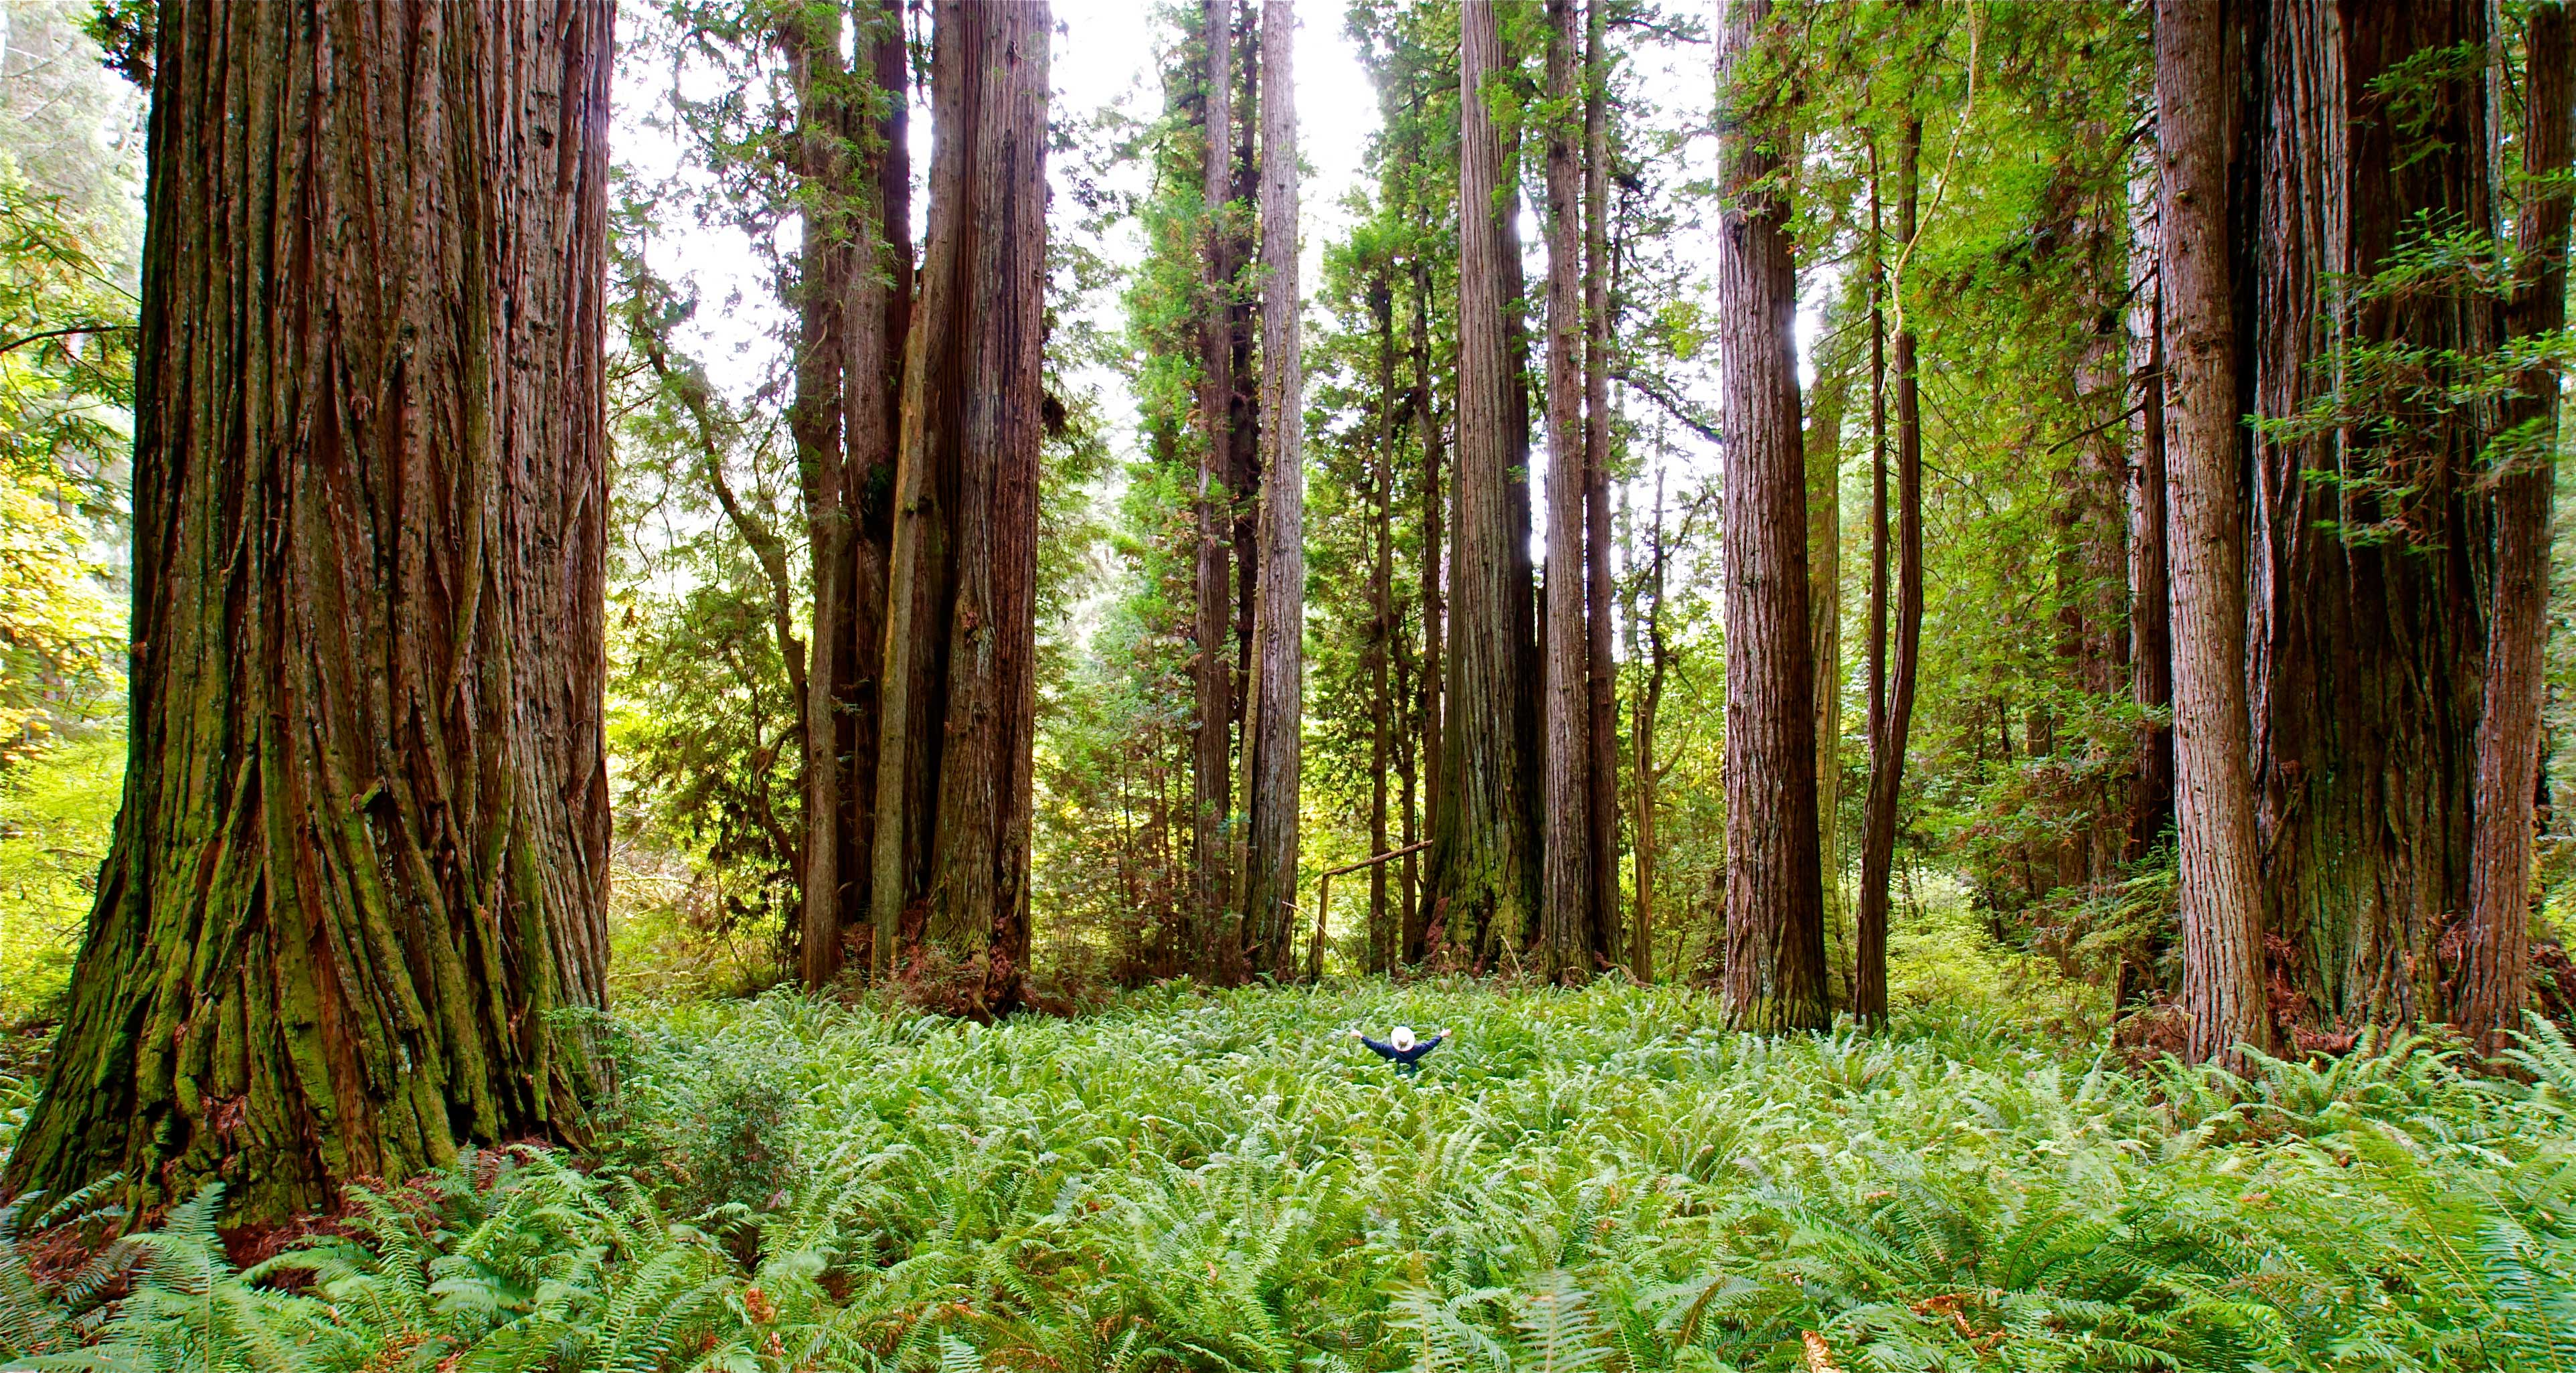 Image from Prairie Creek Redwoods SP